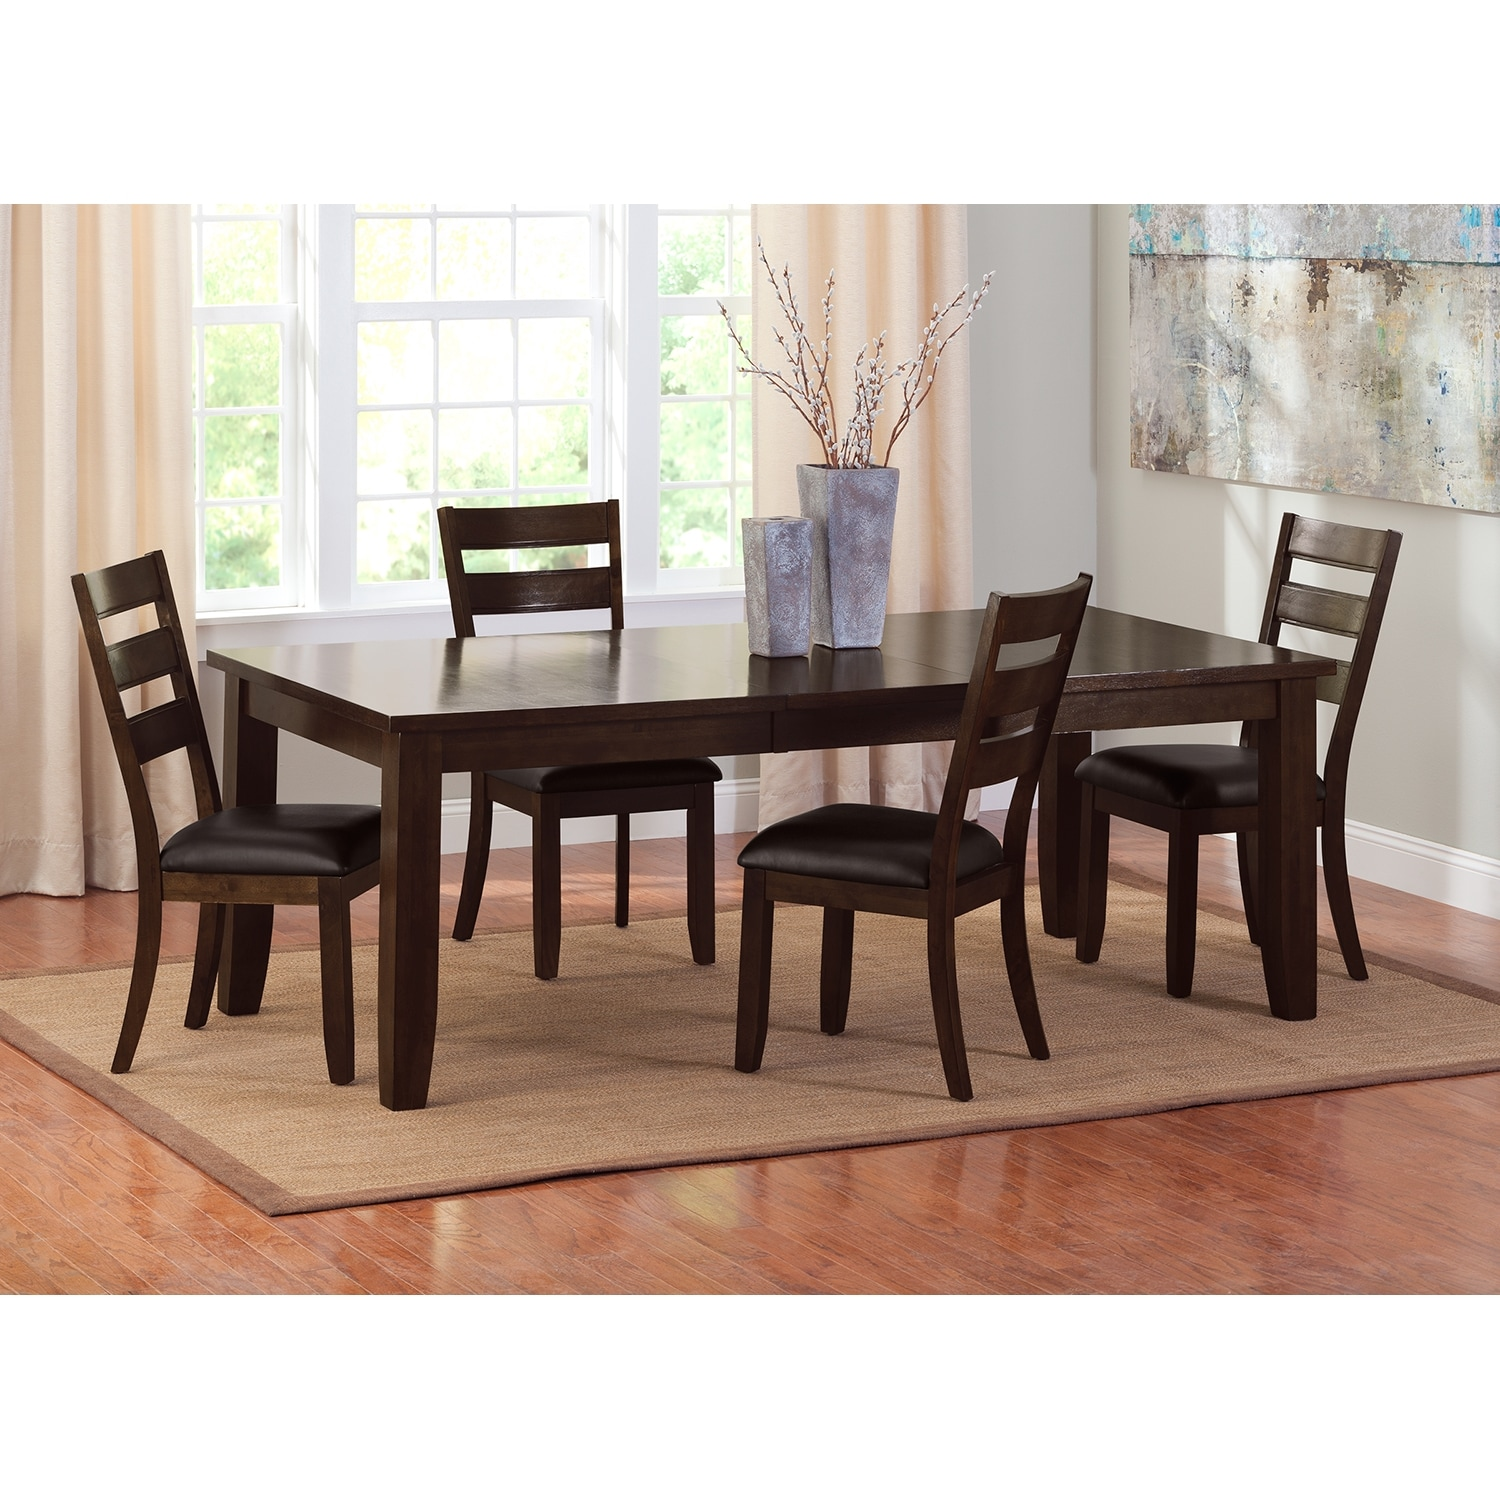 Abaco Table And 4 Chairs Brown American Signature Furniture